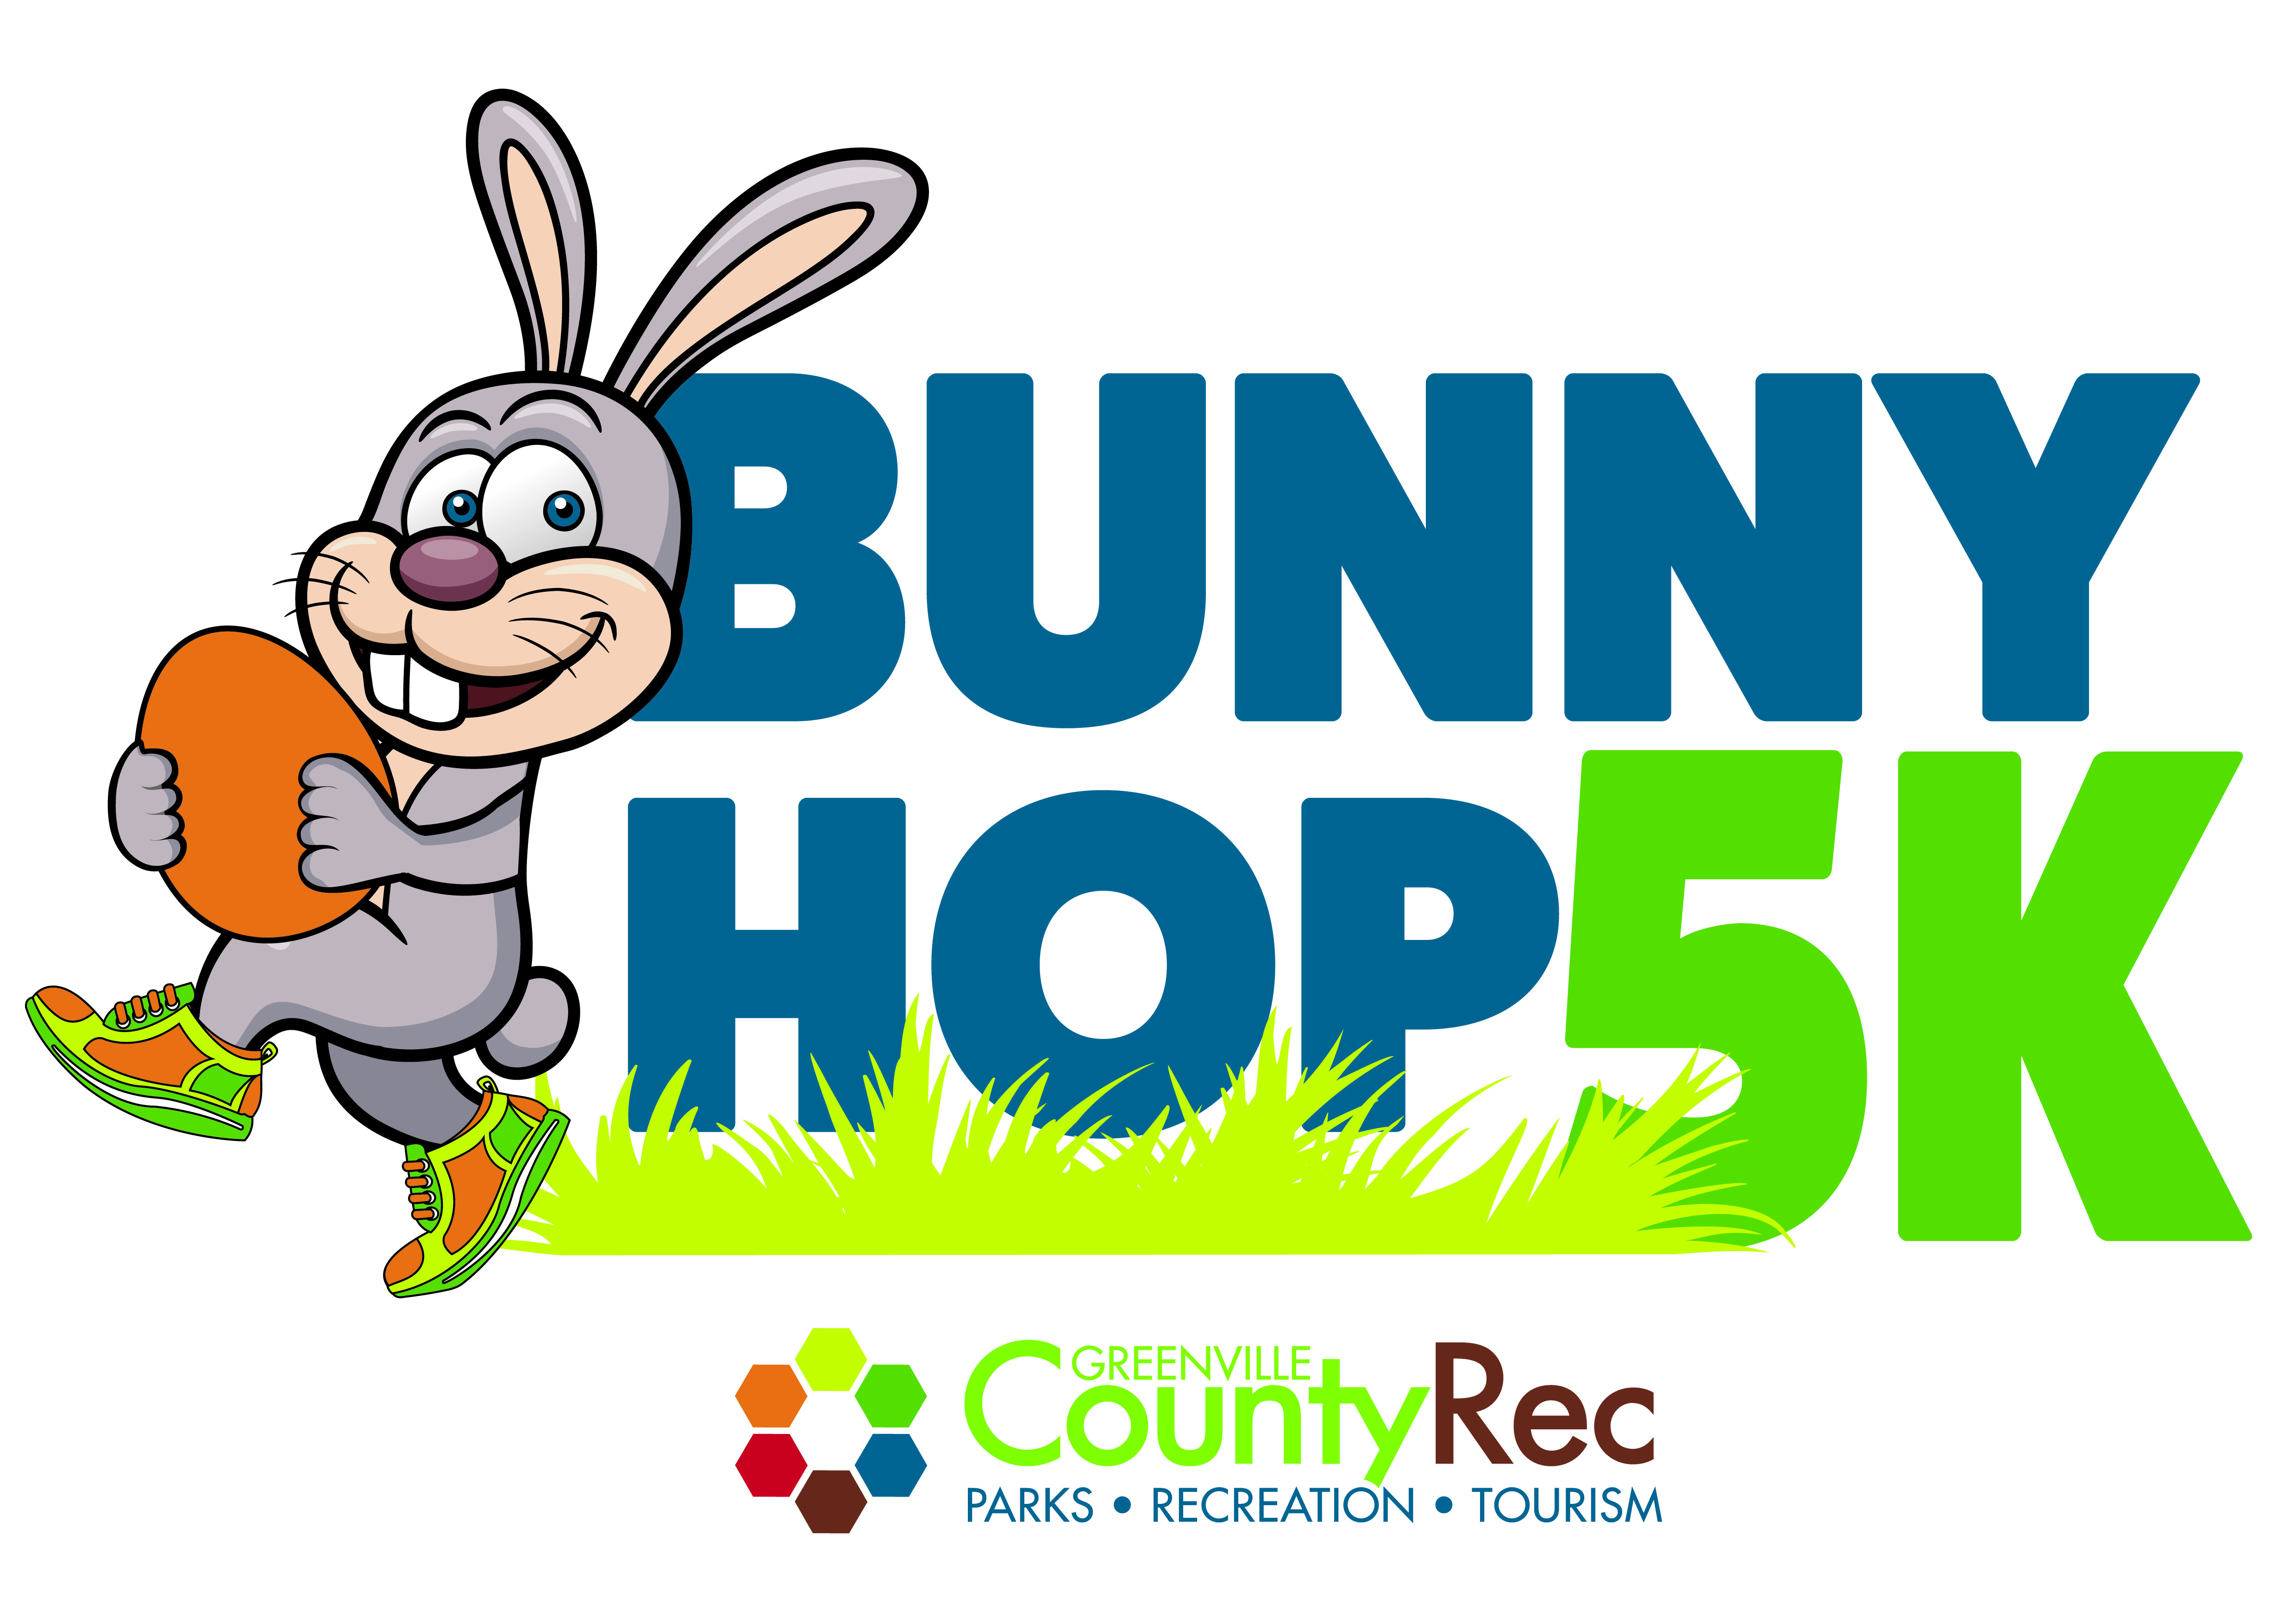 bunny hop 142k posts - see instagram photos and videos from 'bunnyhop' hashtag.